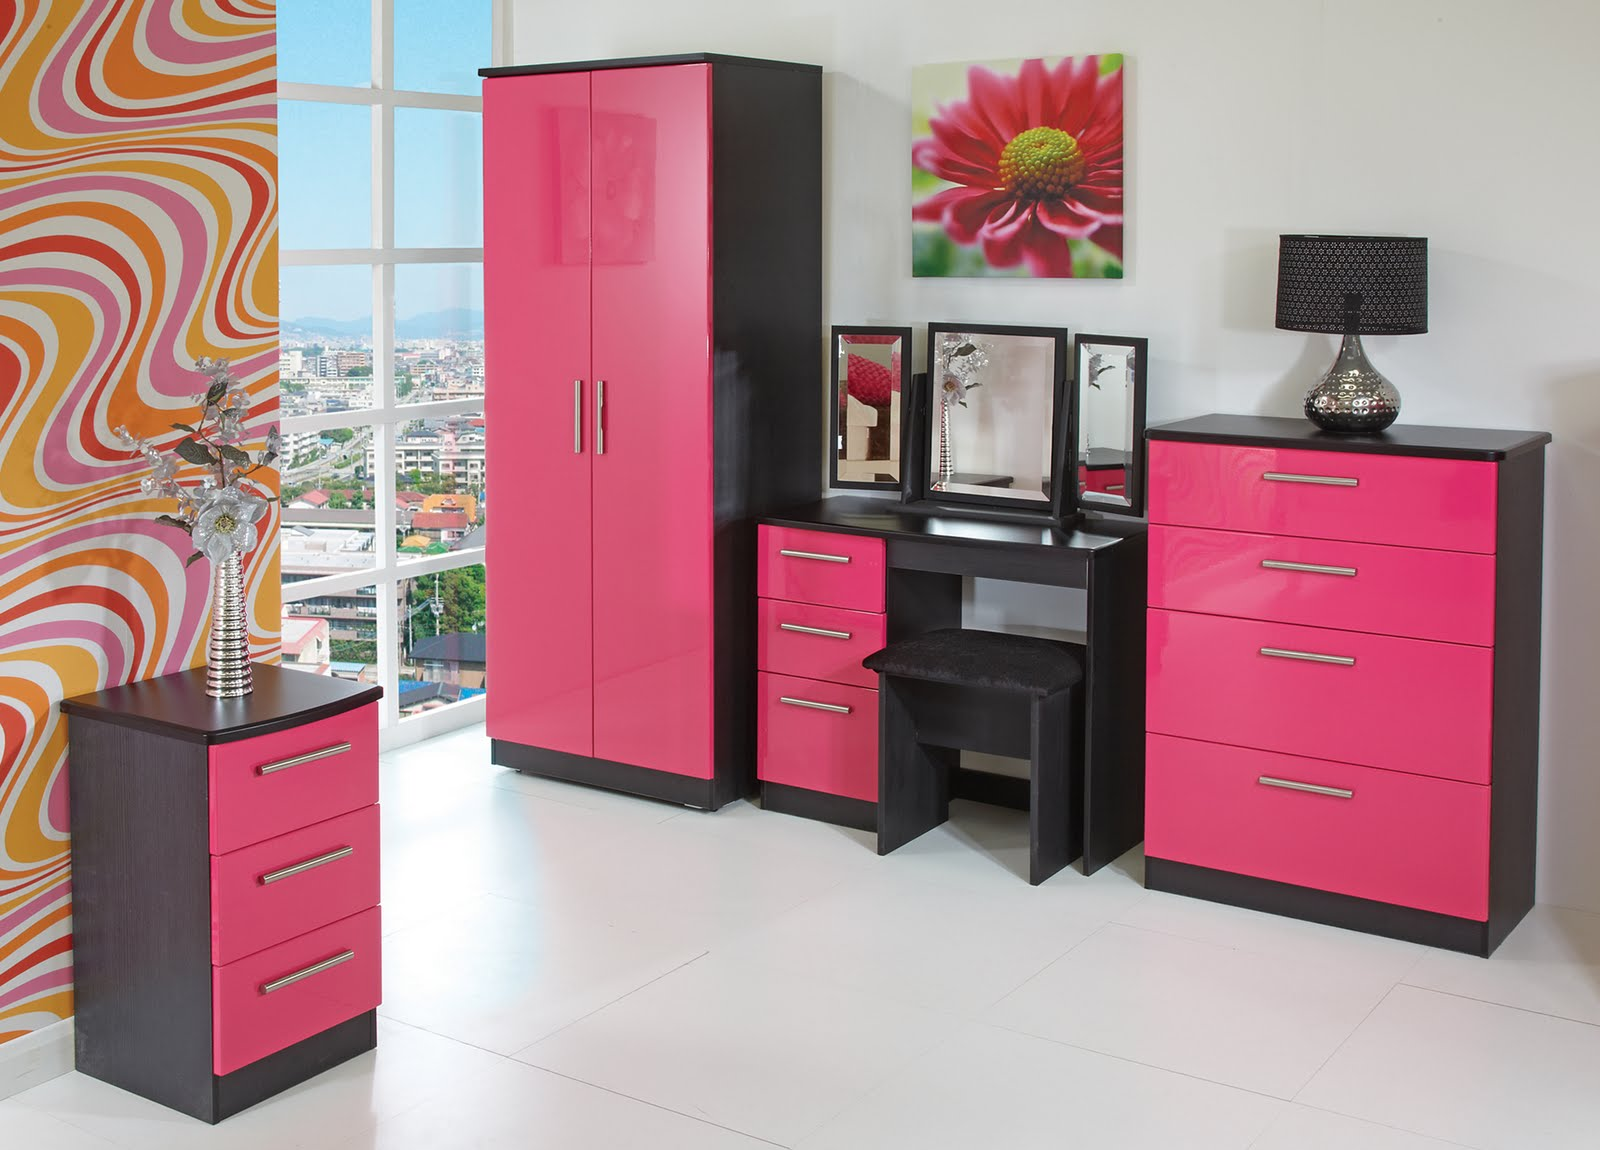 Modern bedroom furniture stores popular interior house ideas for Bedroom designs pink and black